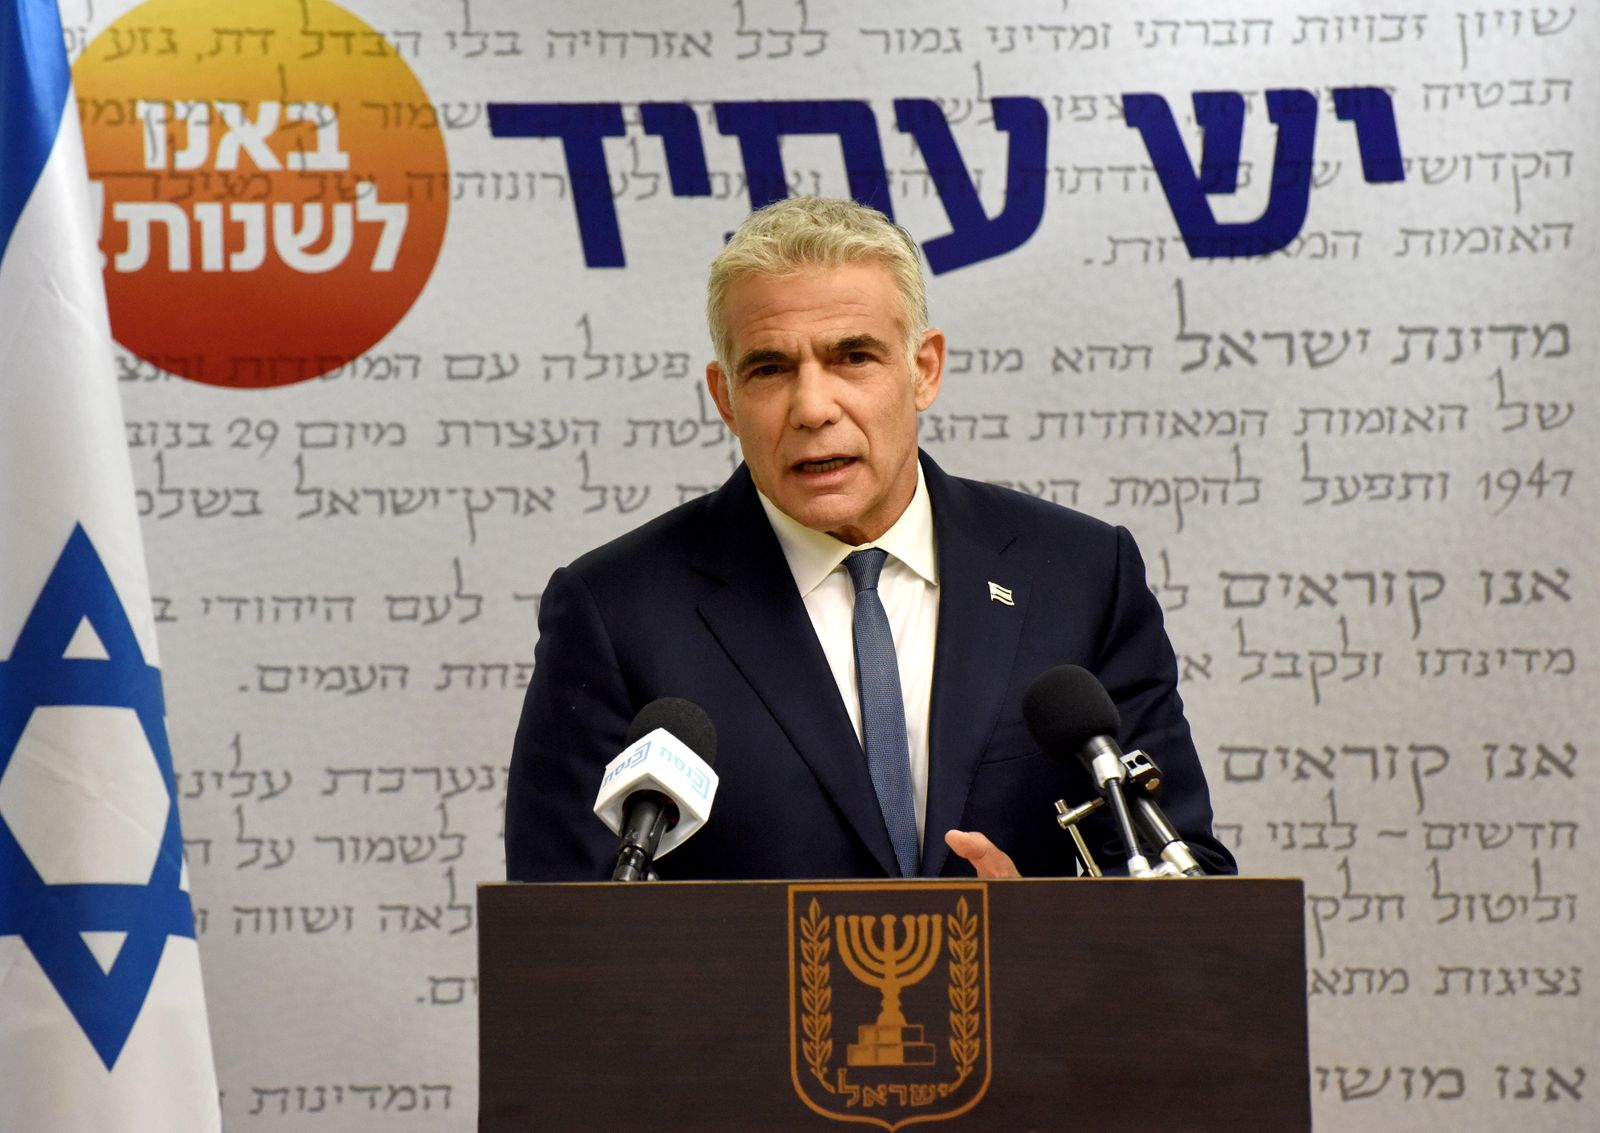 Yair Lapid Makes A Statement In The Knesset In Jerusalem